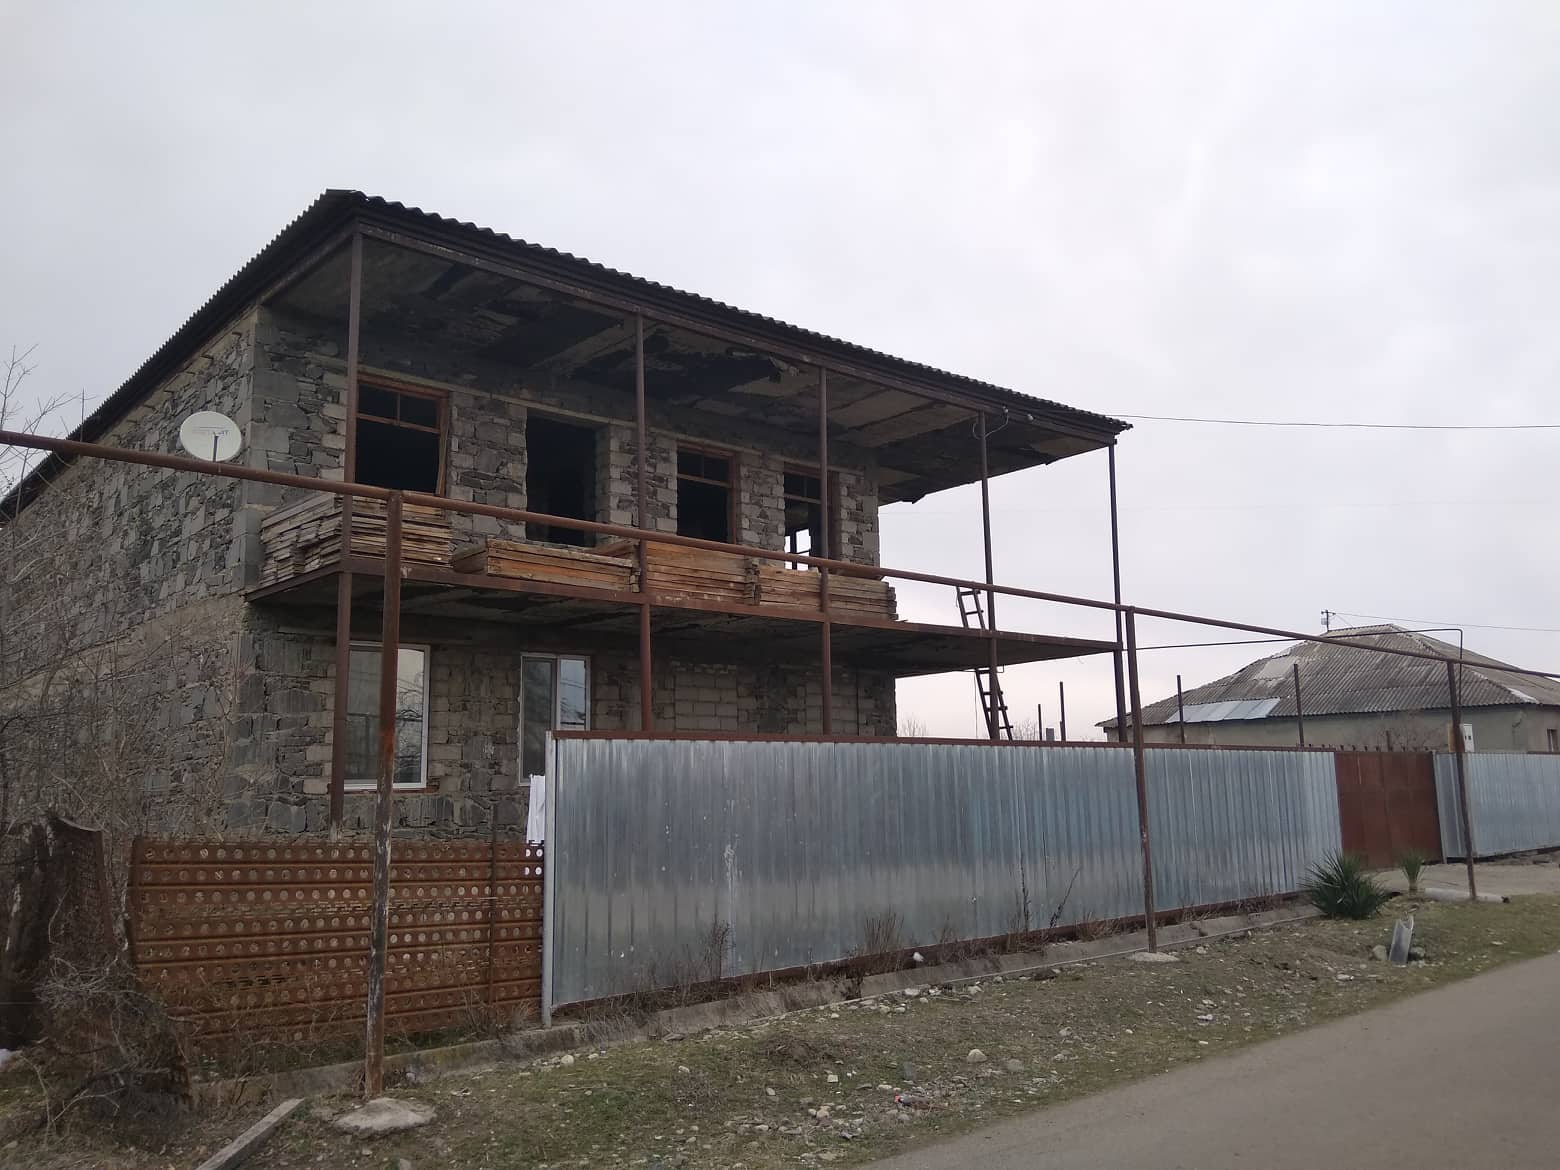 Nadibaidze family's new house in Tamarisi. It is still under construction